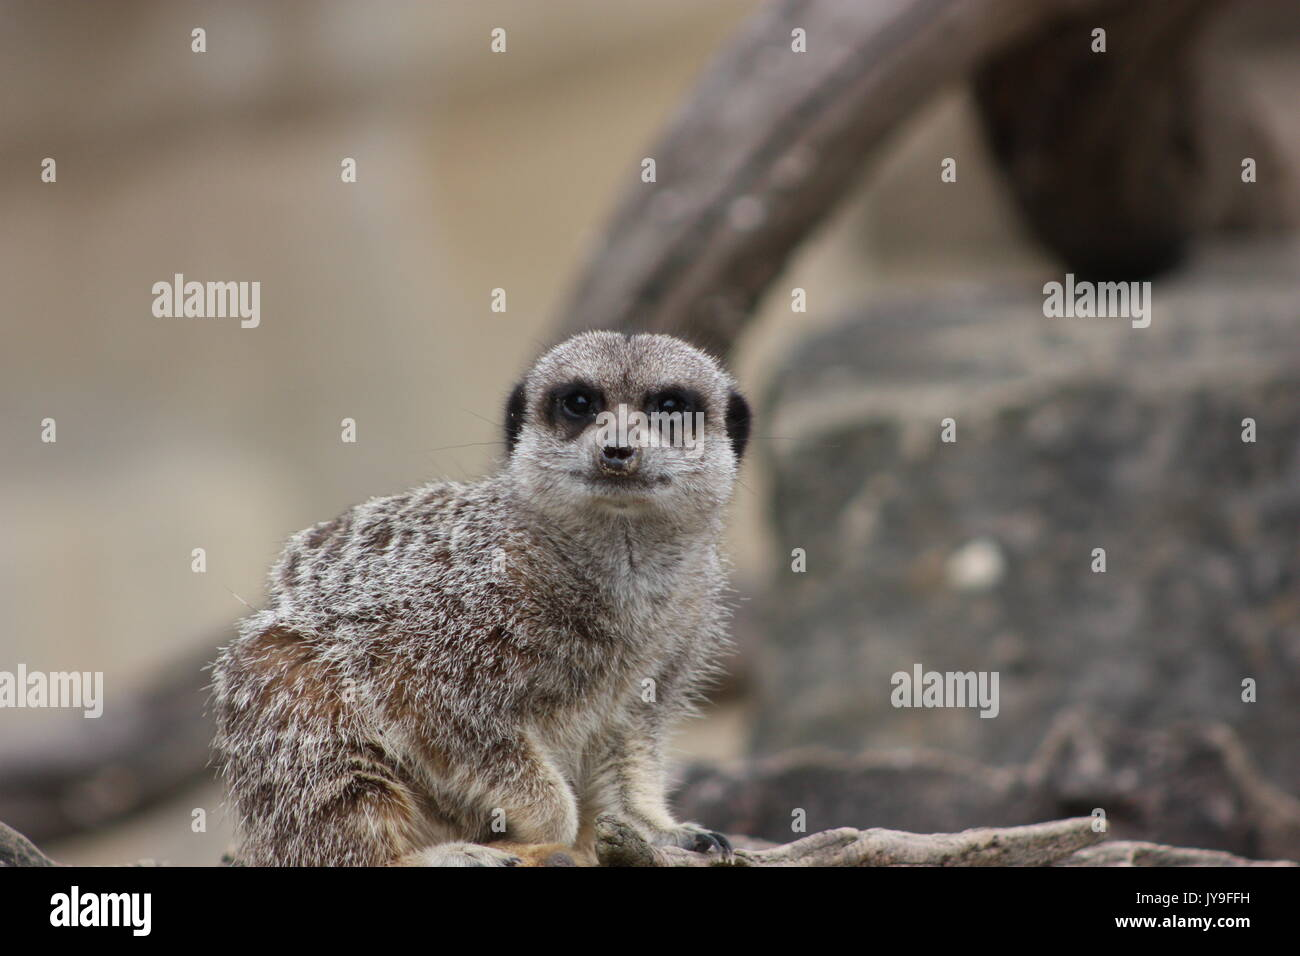 Compare the meercat! - Stock Image